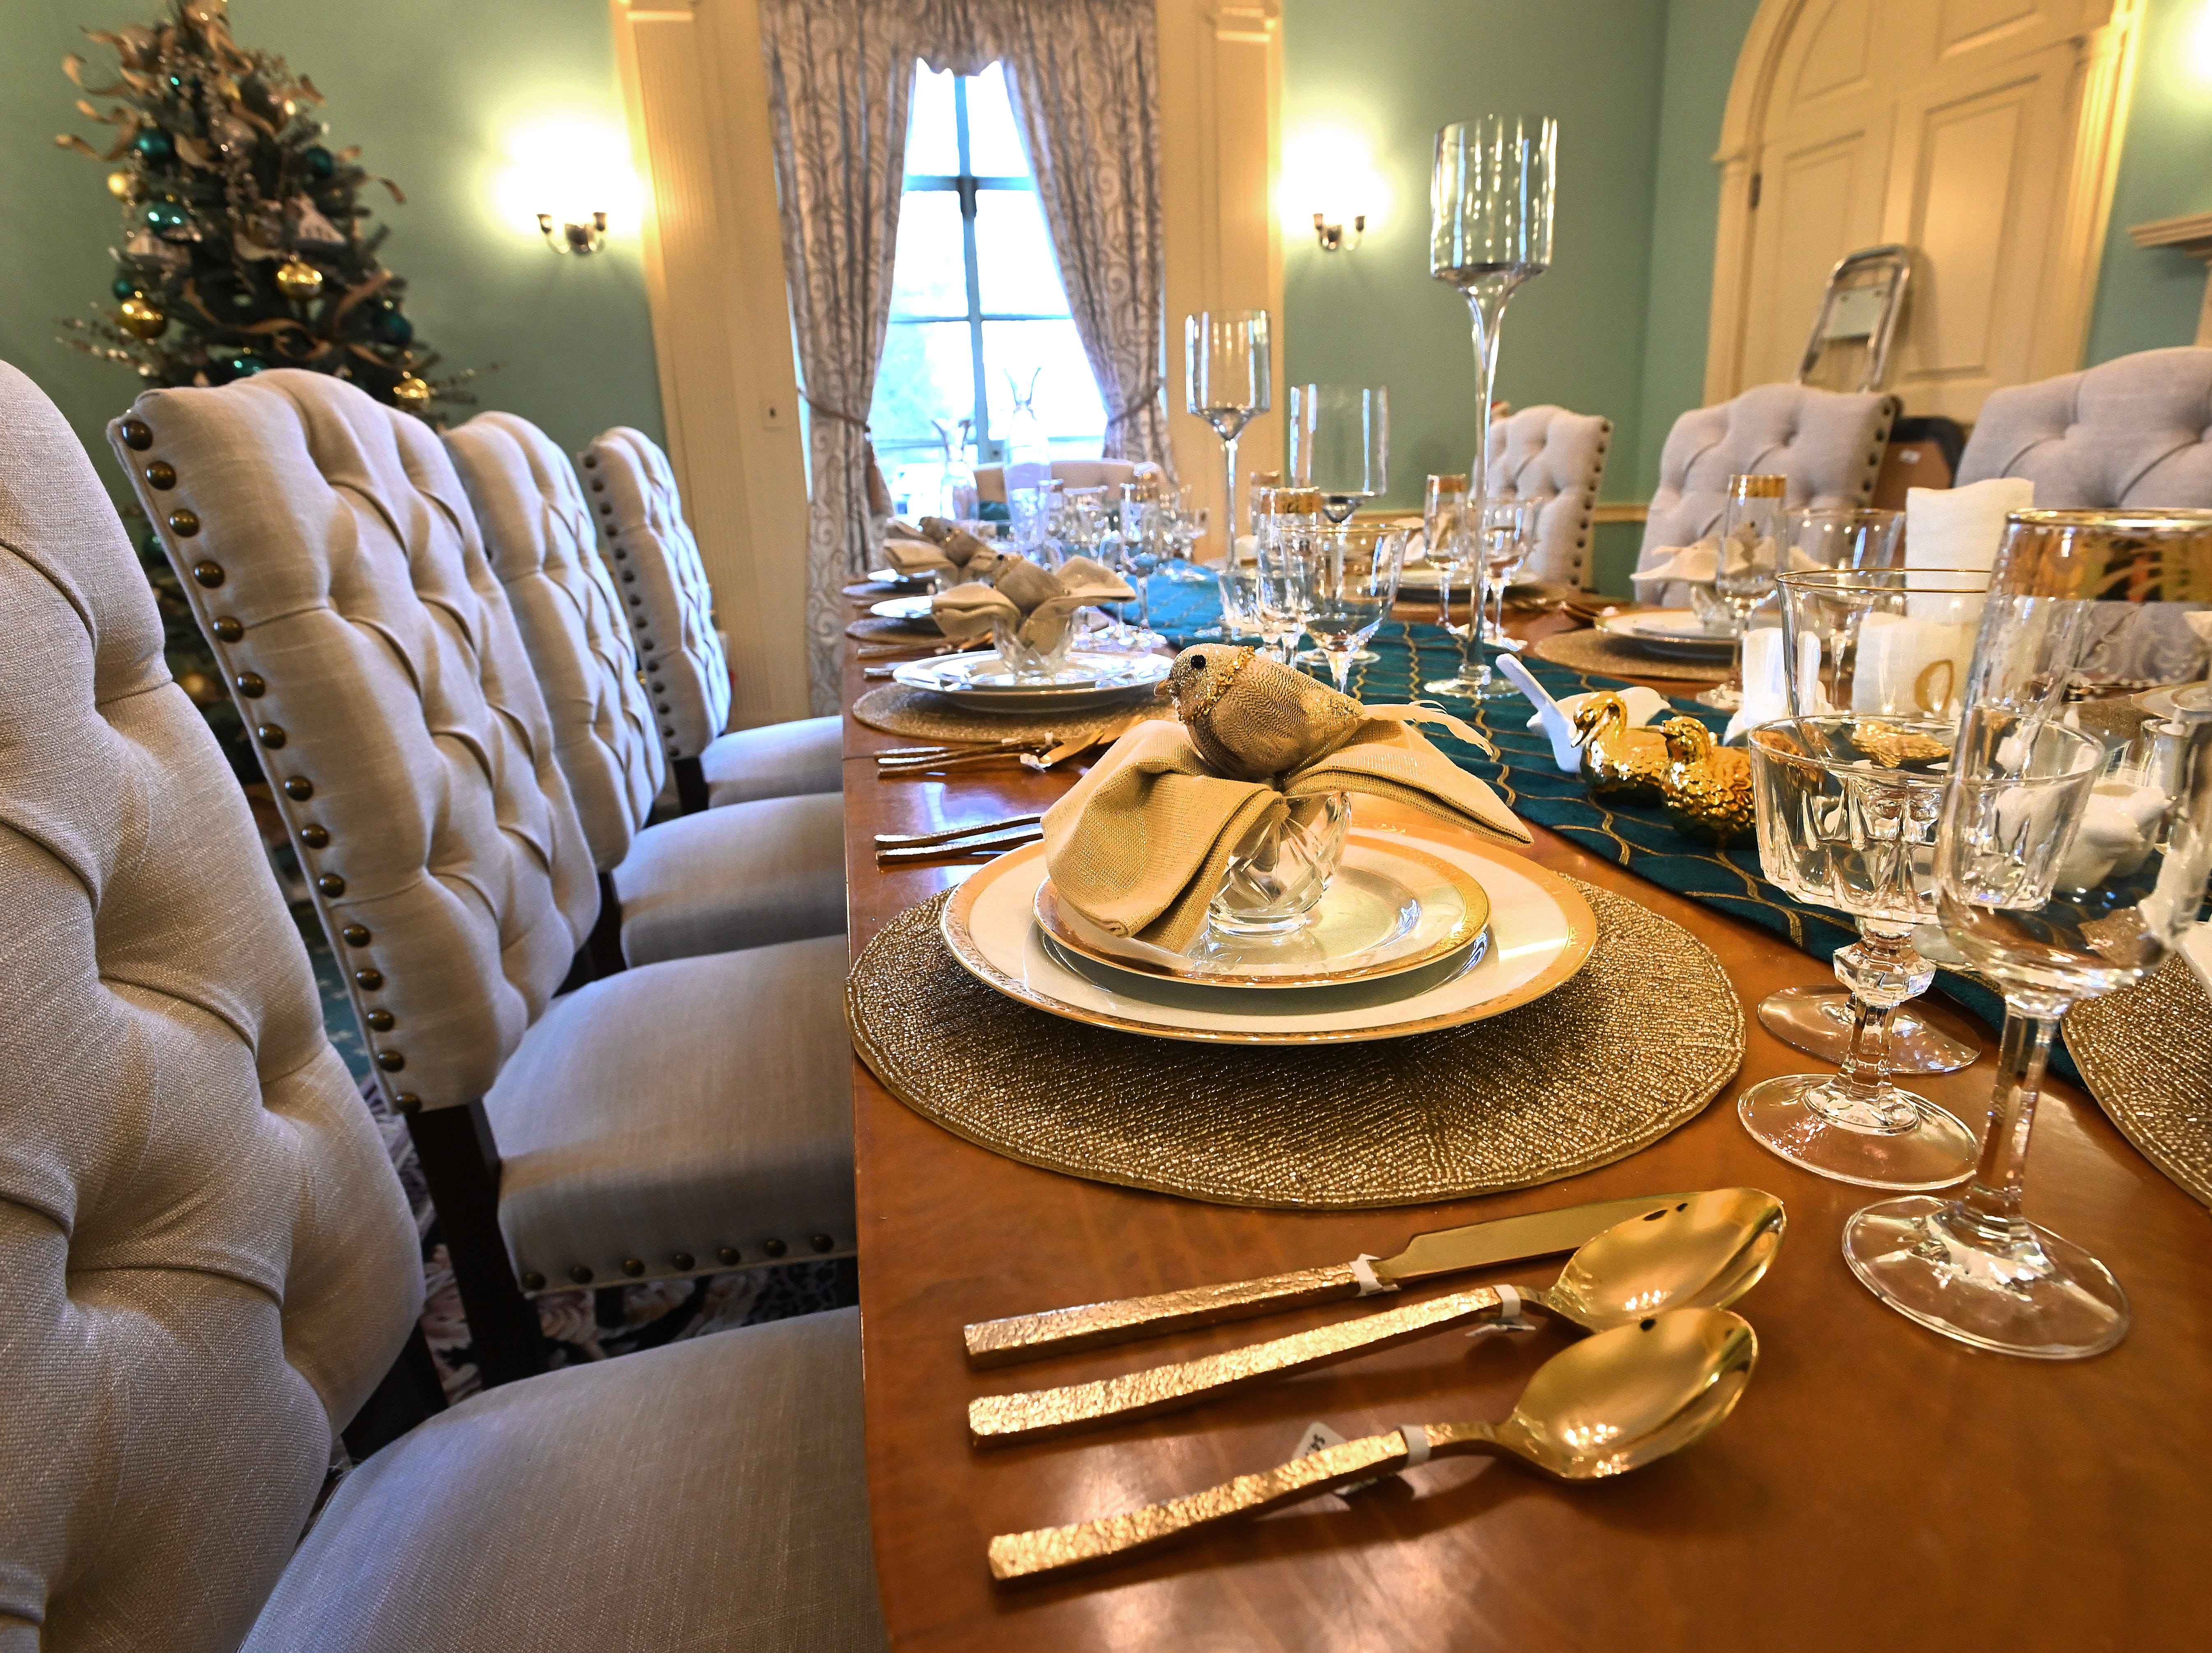 Formal finery decorates the dining table set for ten hungry guests.